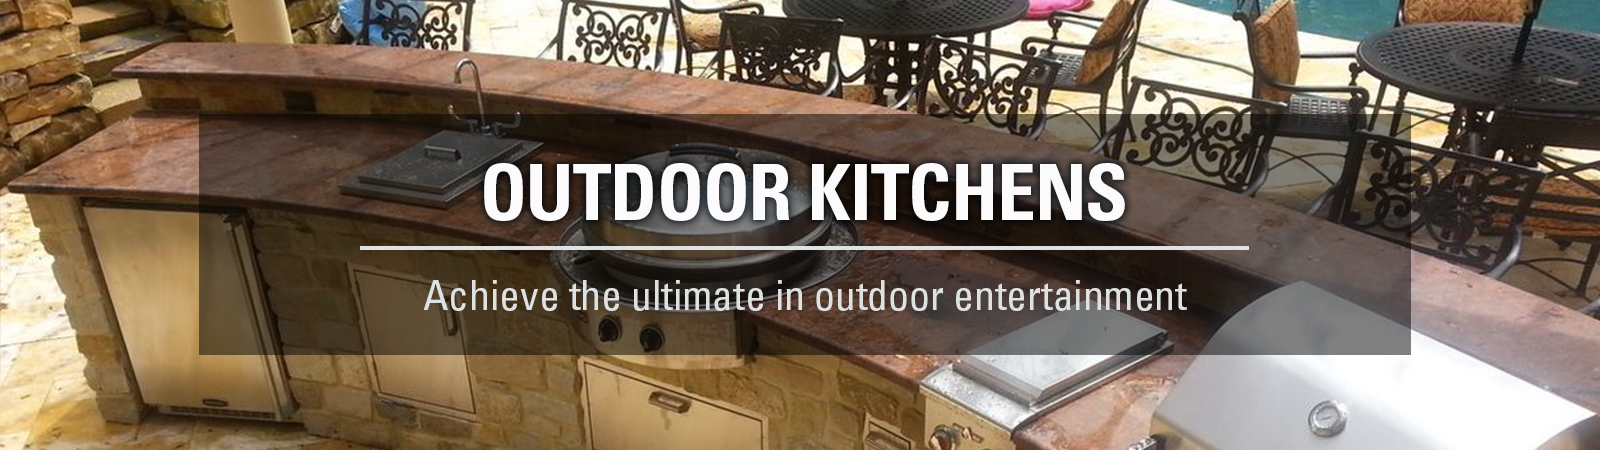 IMP05017_Affordable_Outdoor_Kitchens_Banner_2_111517